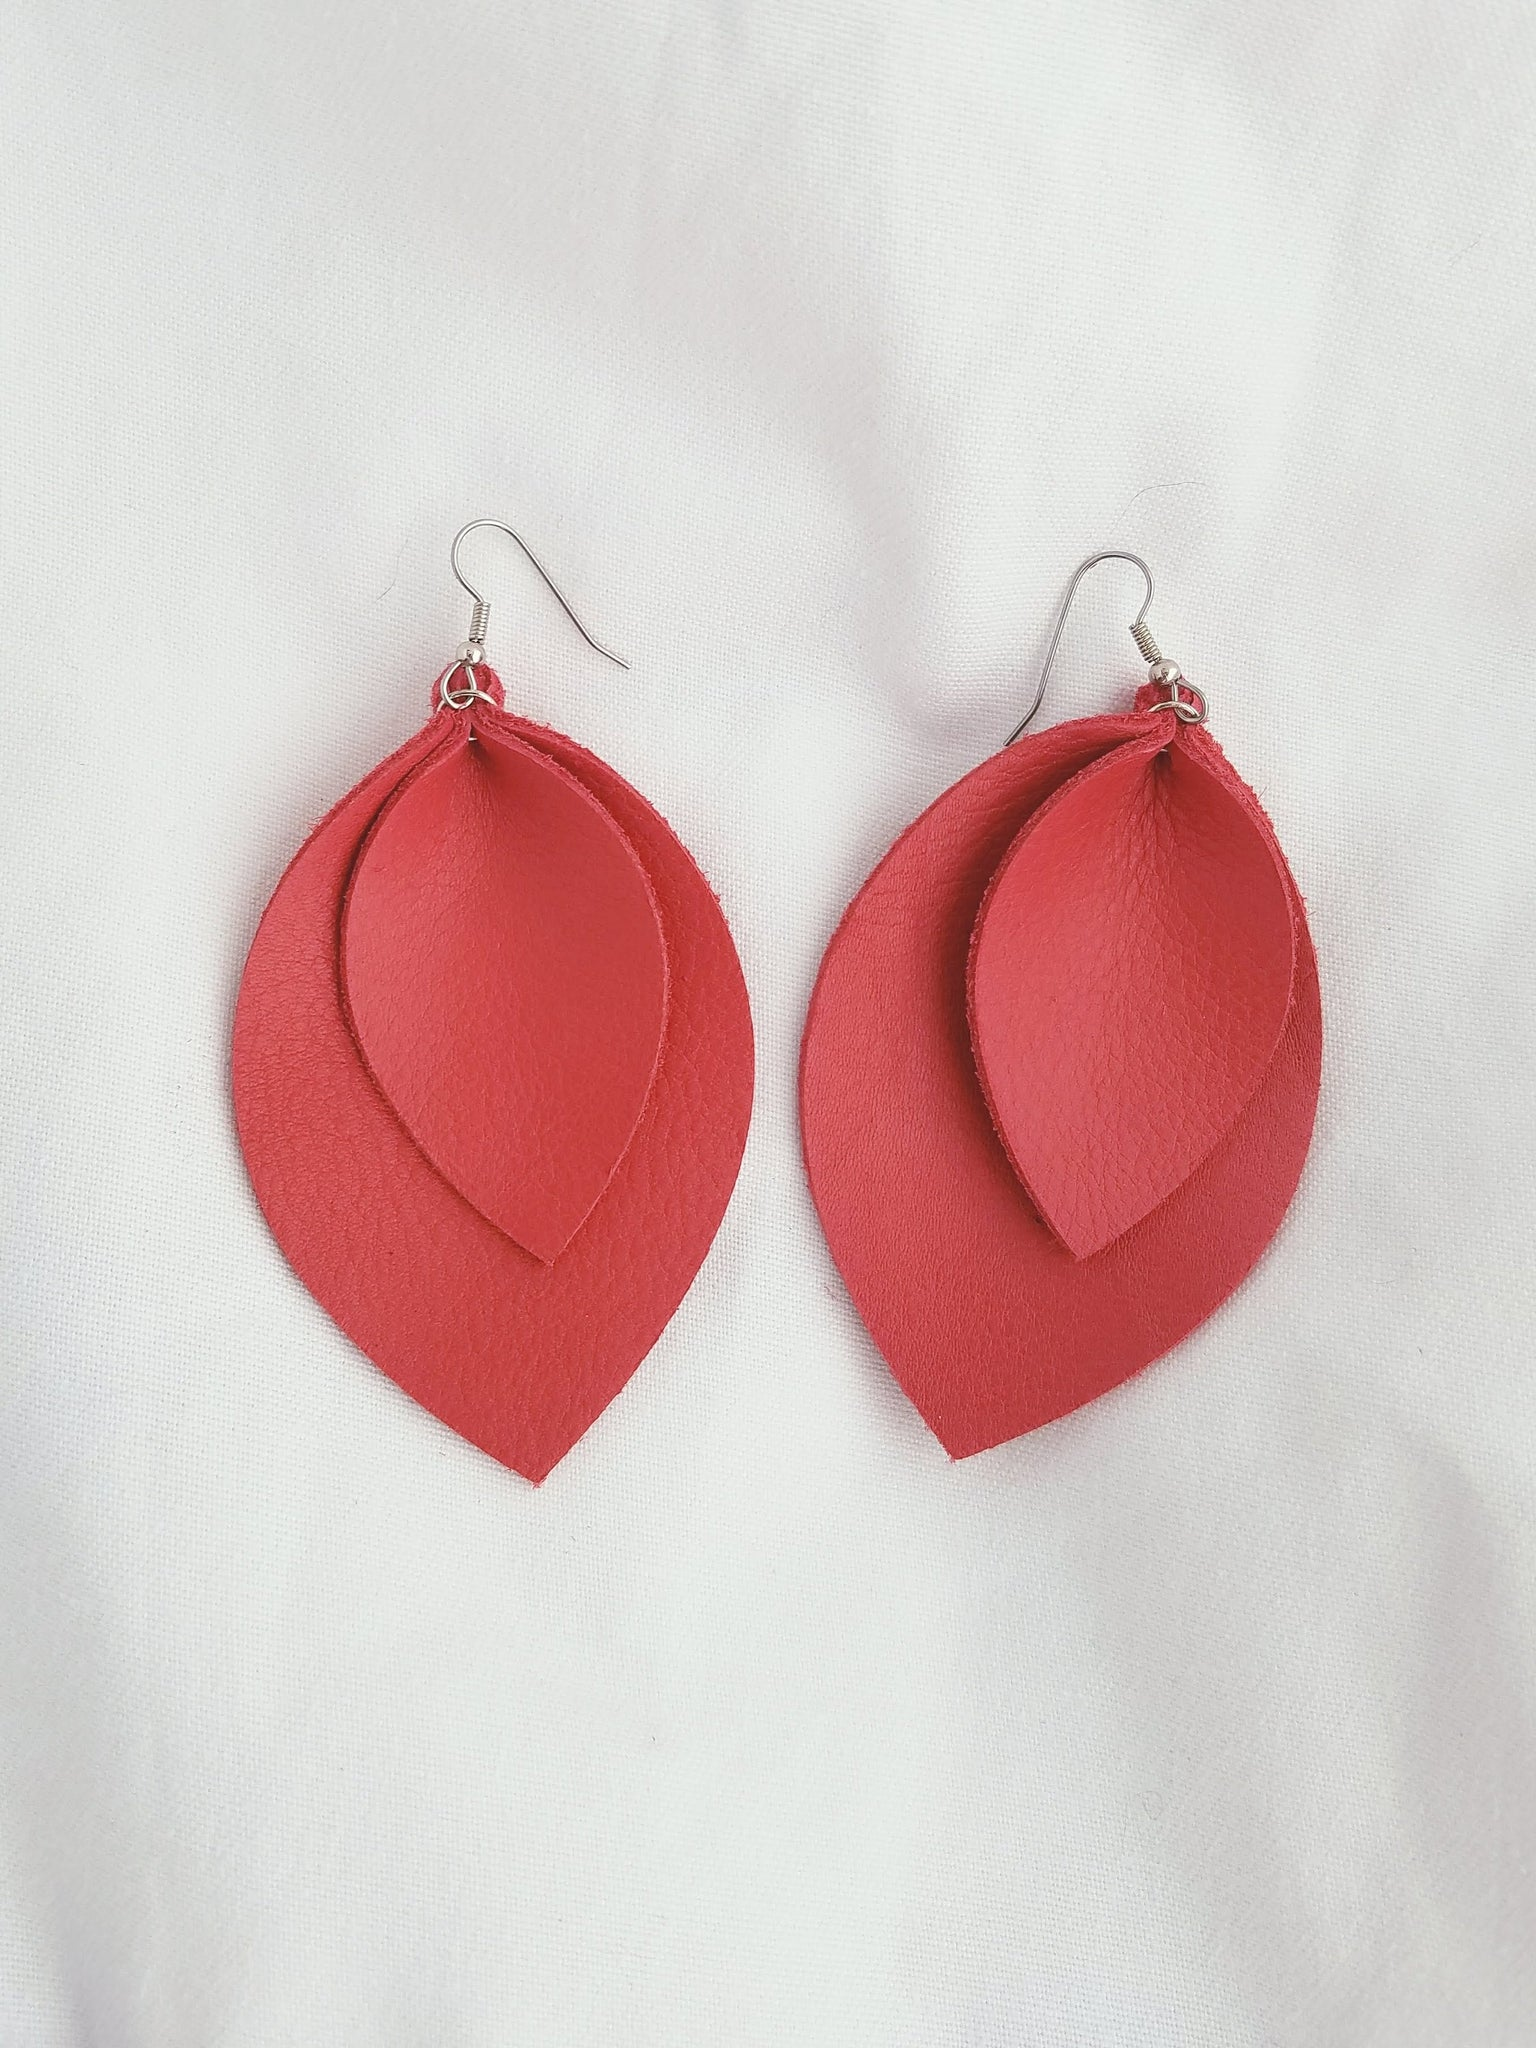 Cherry Tomato / Leather Earrings / Leaf Style / XL / FREE SHIPPING